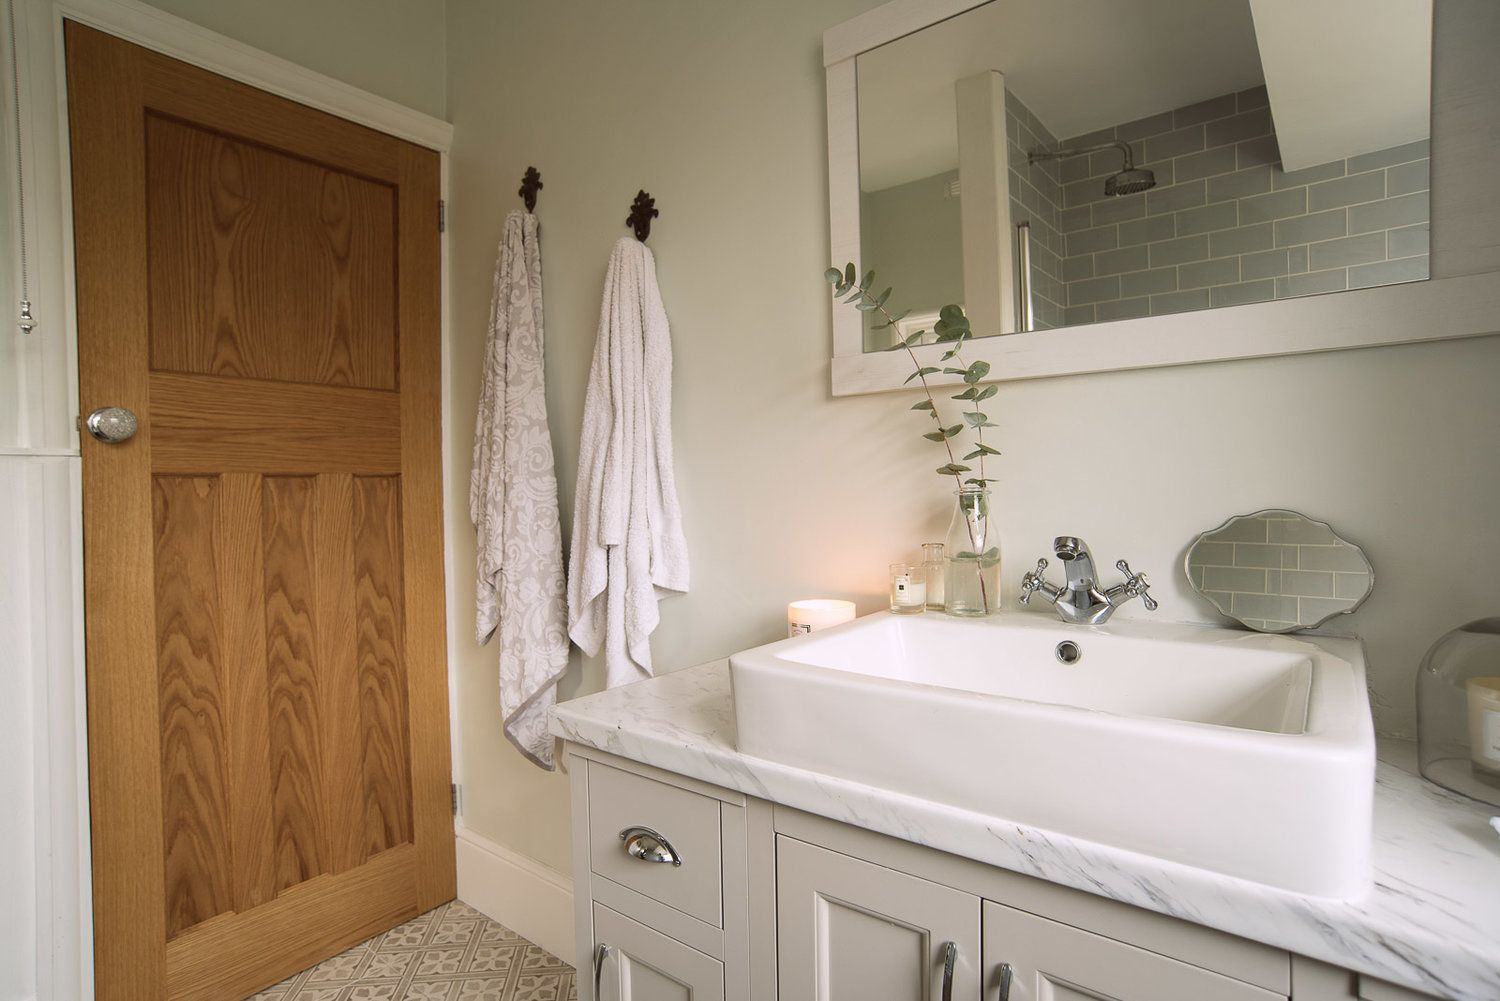 My Bathroom Makeover With Before After Pics Fifi Mcgee Interiors Renovation Blog Bathroom Makeover 1930s House Renovation Interior Renovation